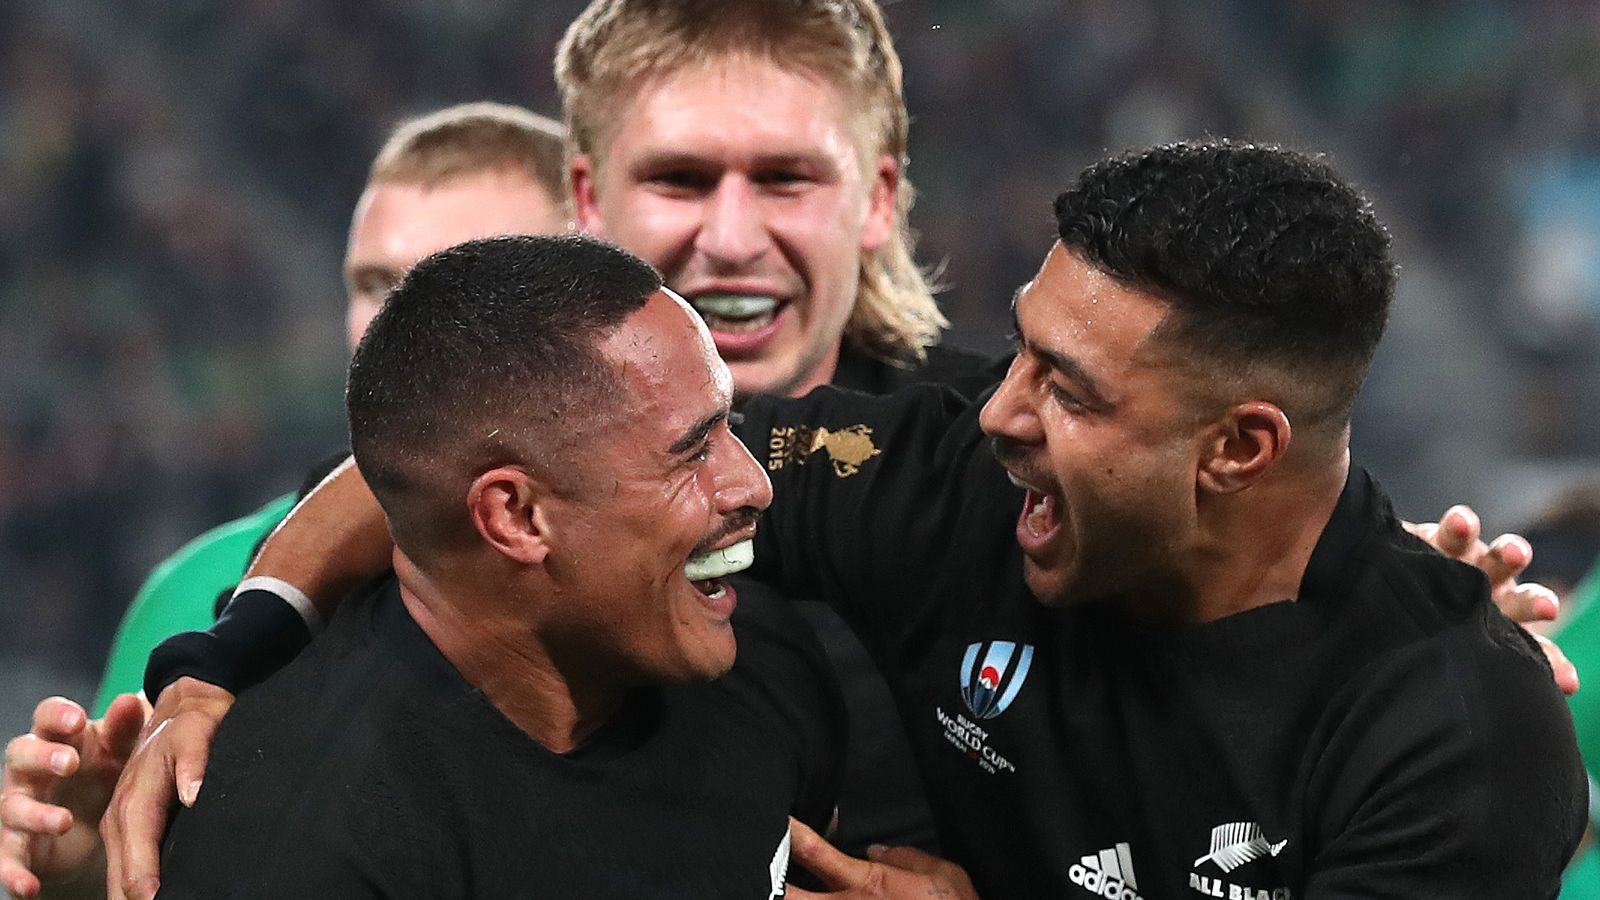 New Zealand 46-14 Ireland: All Blacks crush Ireland